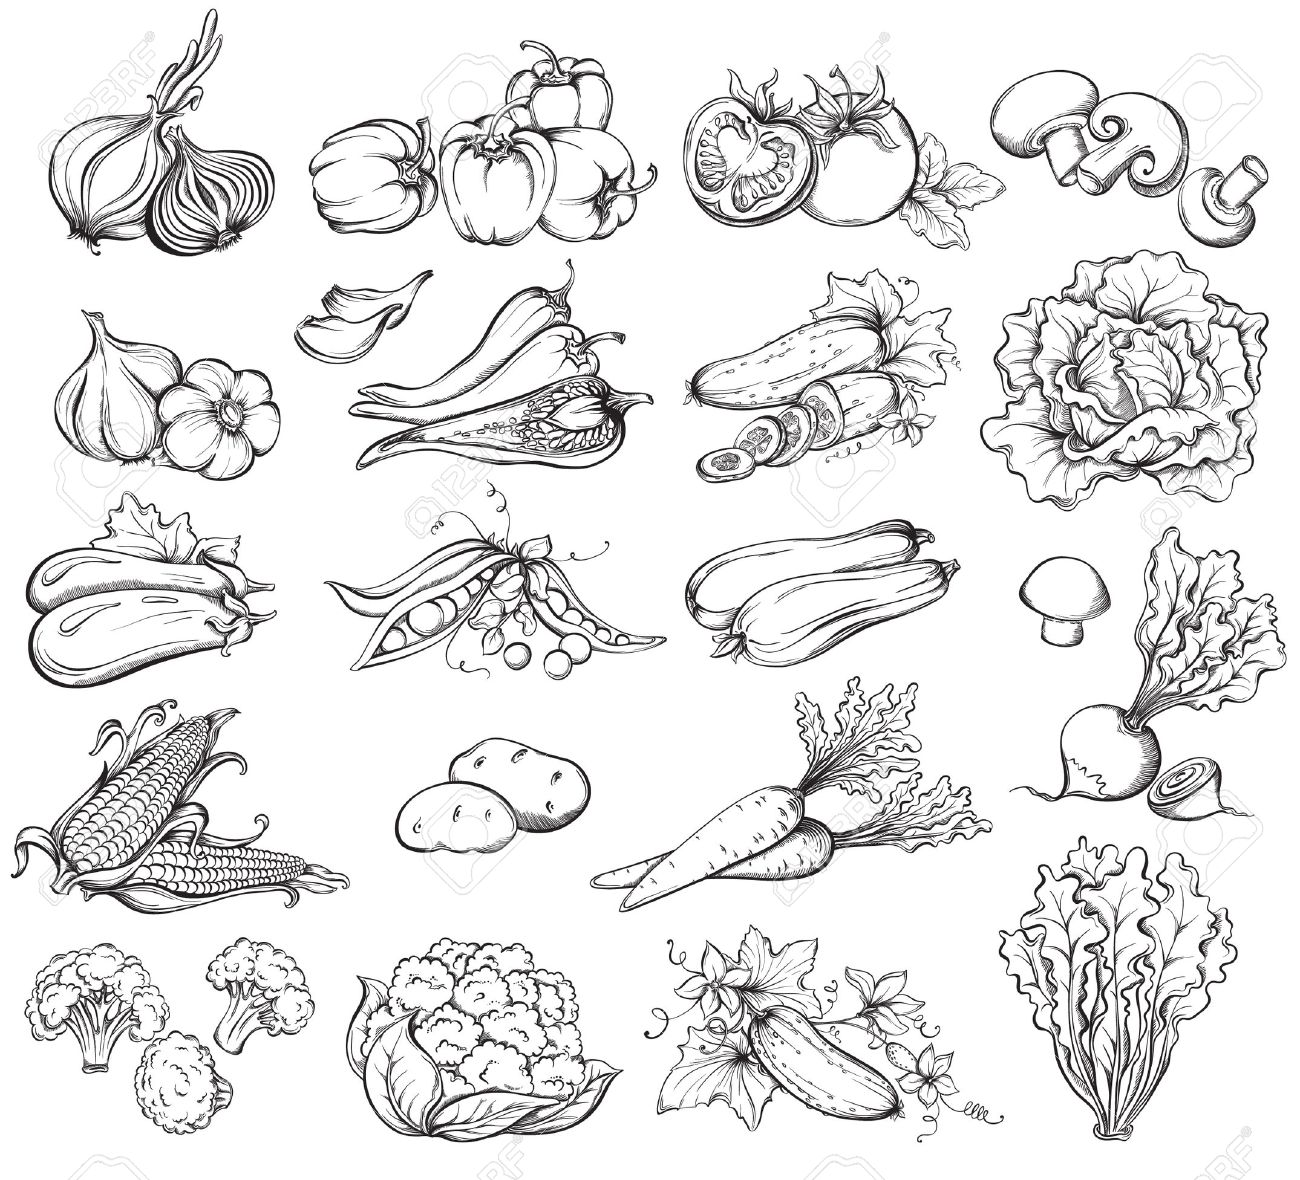 Vegetable garden sketch -  Vegetable Garden Sketch Hand Drawn Download